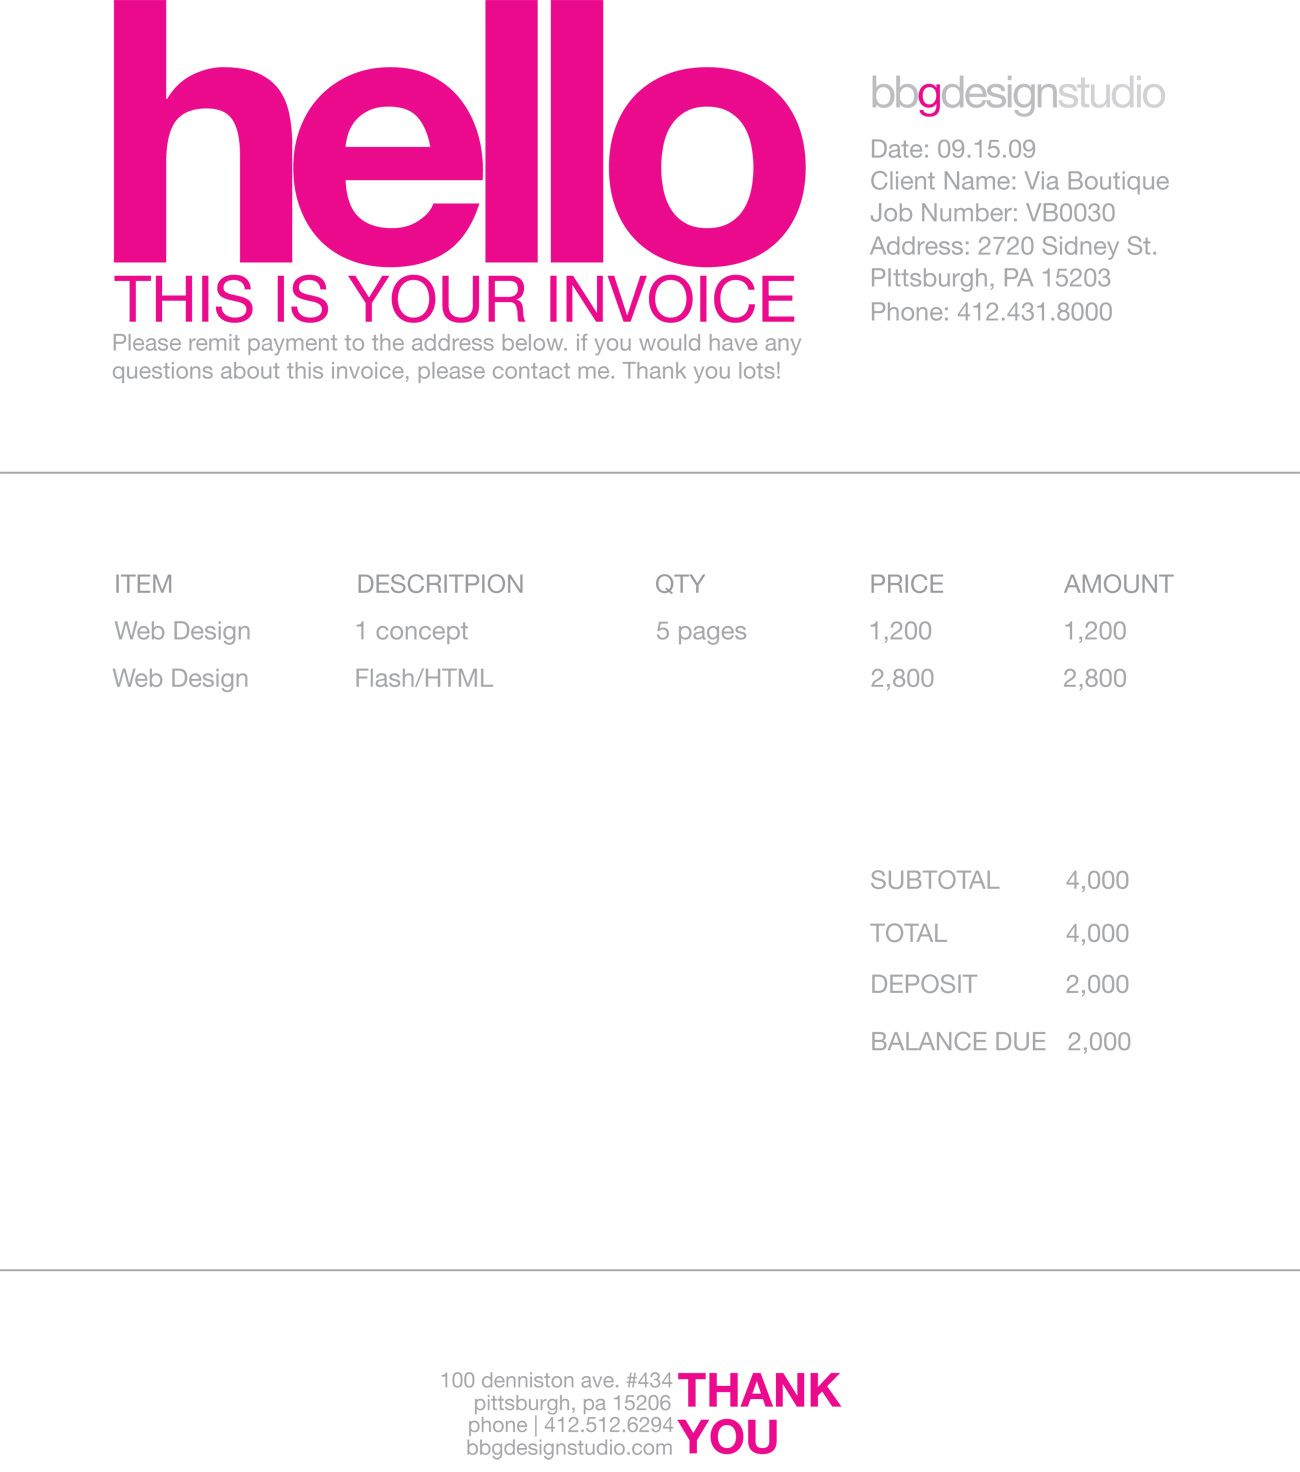 Aaaaeroincus  Outstanding  Images About Invoice Design On Pinterest With Gorgeous Car Repair Invoice Besides Billing Invoice Templates Furthermore Definition Of An Invoice With Adorable Easy Invoice Software Also Medical Invoice Template Word In Addition Invoice Car And Invoice Billing As Well As Print Invoices Additionally Invoice Form Free From Pinterestcom With Aaaaeroincus  Gorgeous  Images About Invoice Design On Pinterest With Adorable Car Repair Invoice Besides Billing Invoice Templates Furthermore Definition Of An Invoice And Outstanding Easy Invoice Software Also Medical Invoice Template Word In Addition Invoice Car From Pinterestcom